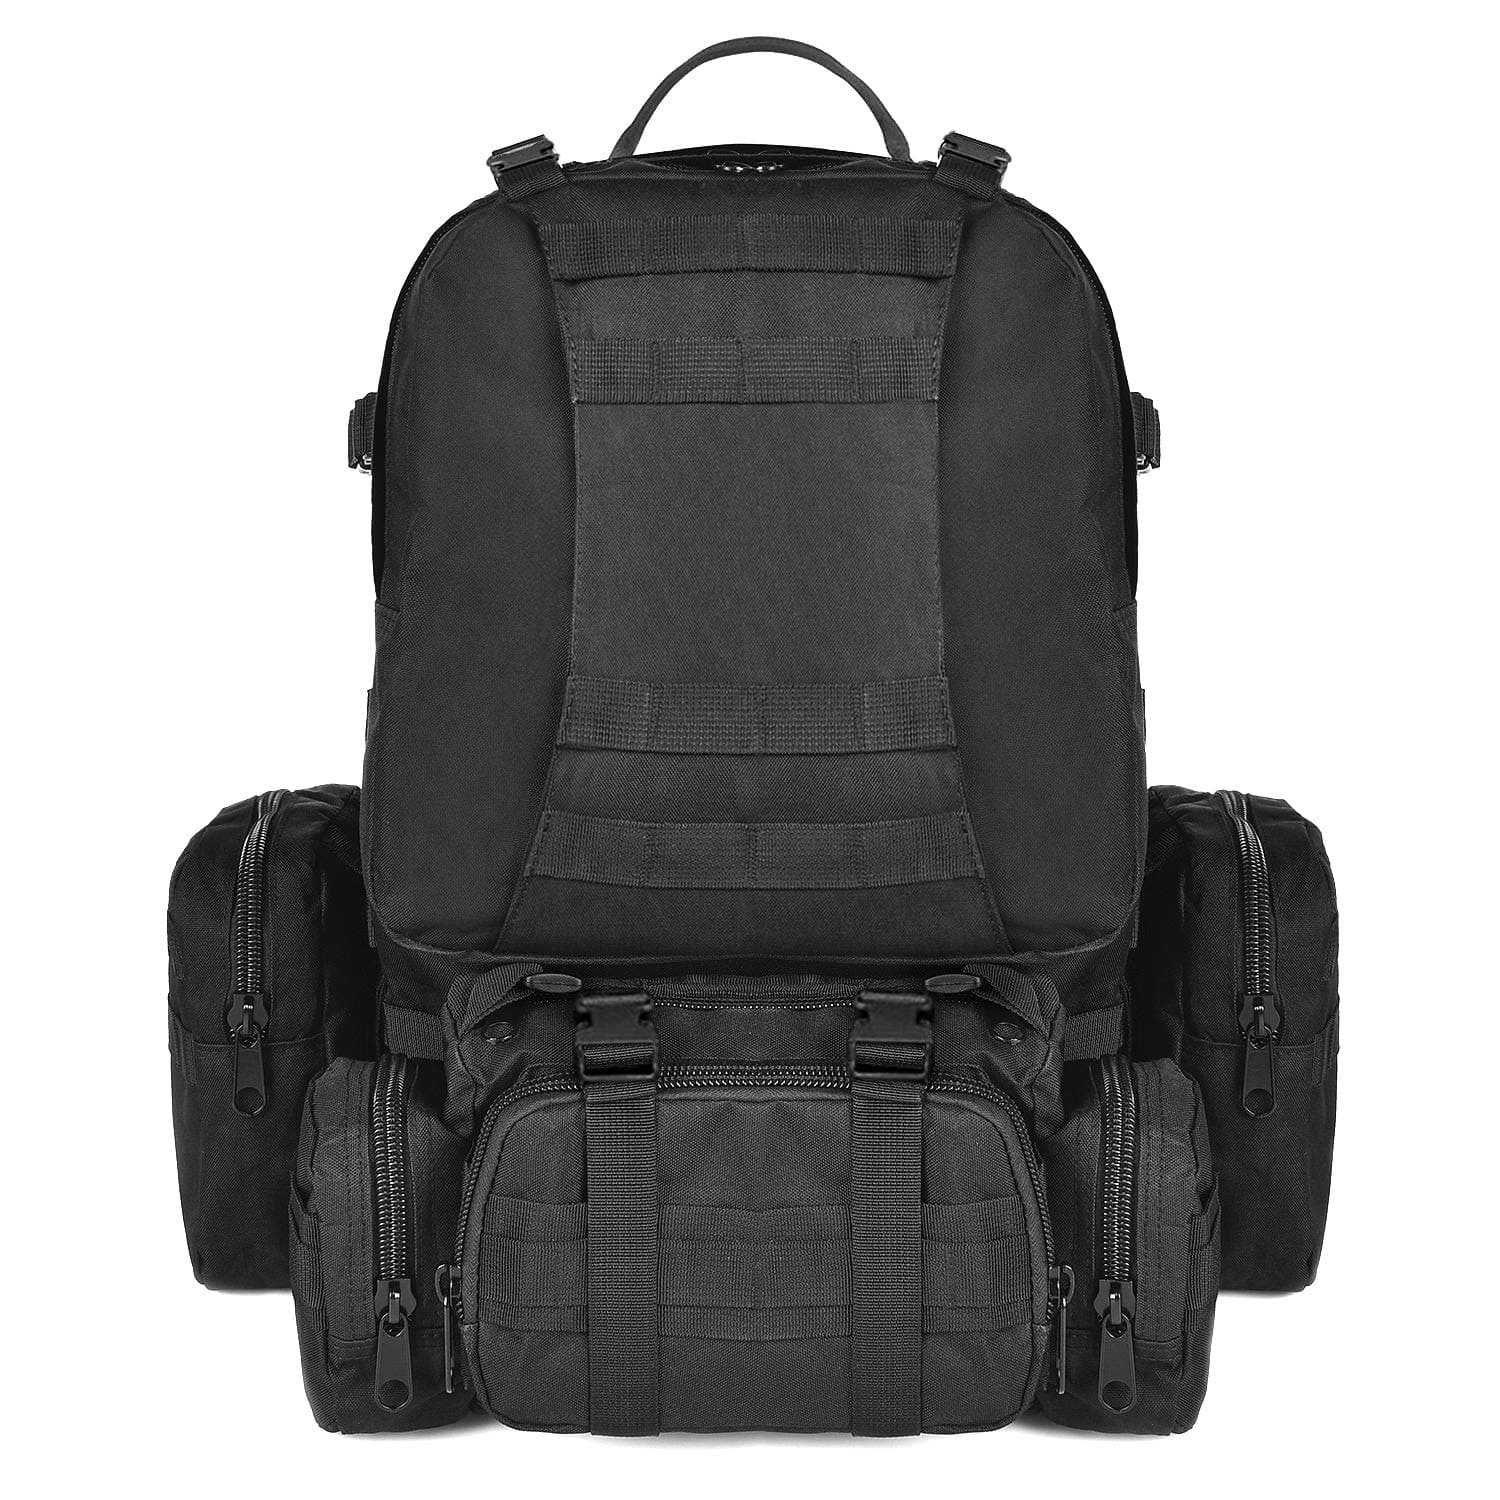 CVLIFE Military Tactical Backpack Army Rucksack Assault Pack Built-up Molle Bag - Amazon $17.79AC